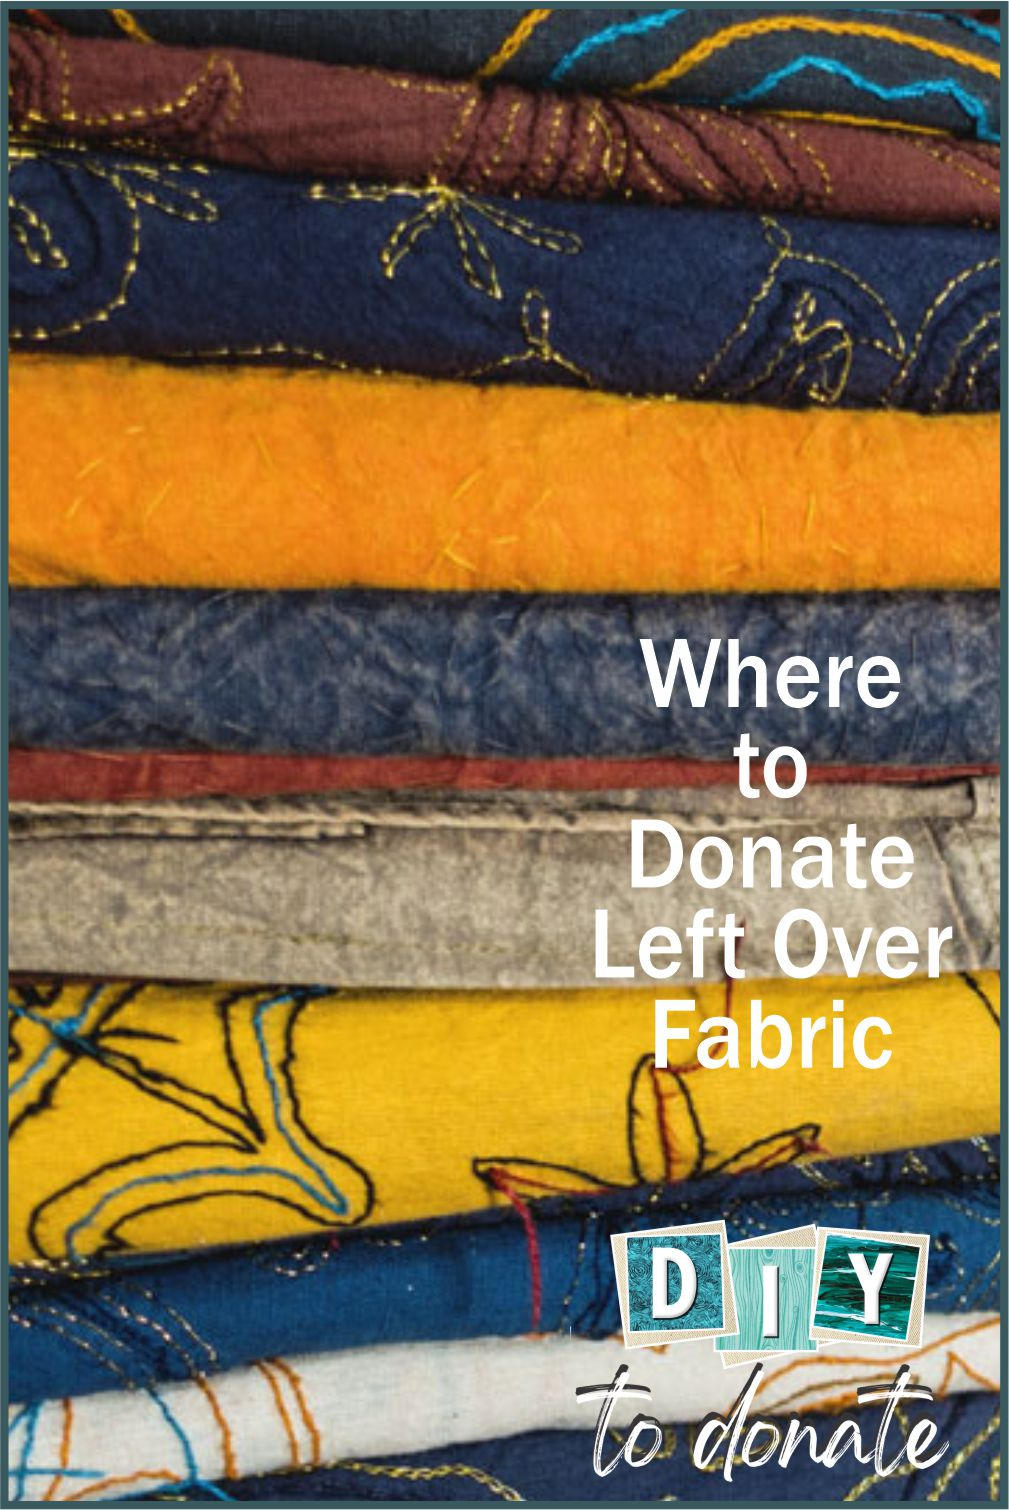 Donate fabric and declutter your sewing room. We have found 13 of the best charities who will gladly accept your donation. #diytotdonate #donatefabric #diy #fabricdonation #declutter #cleansewingroom #charities